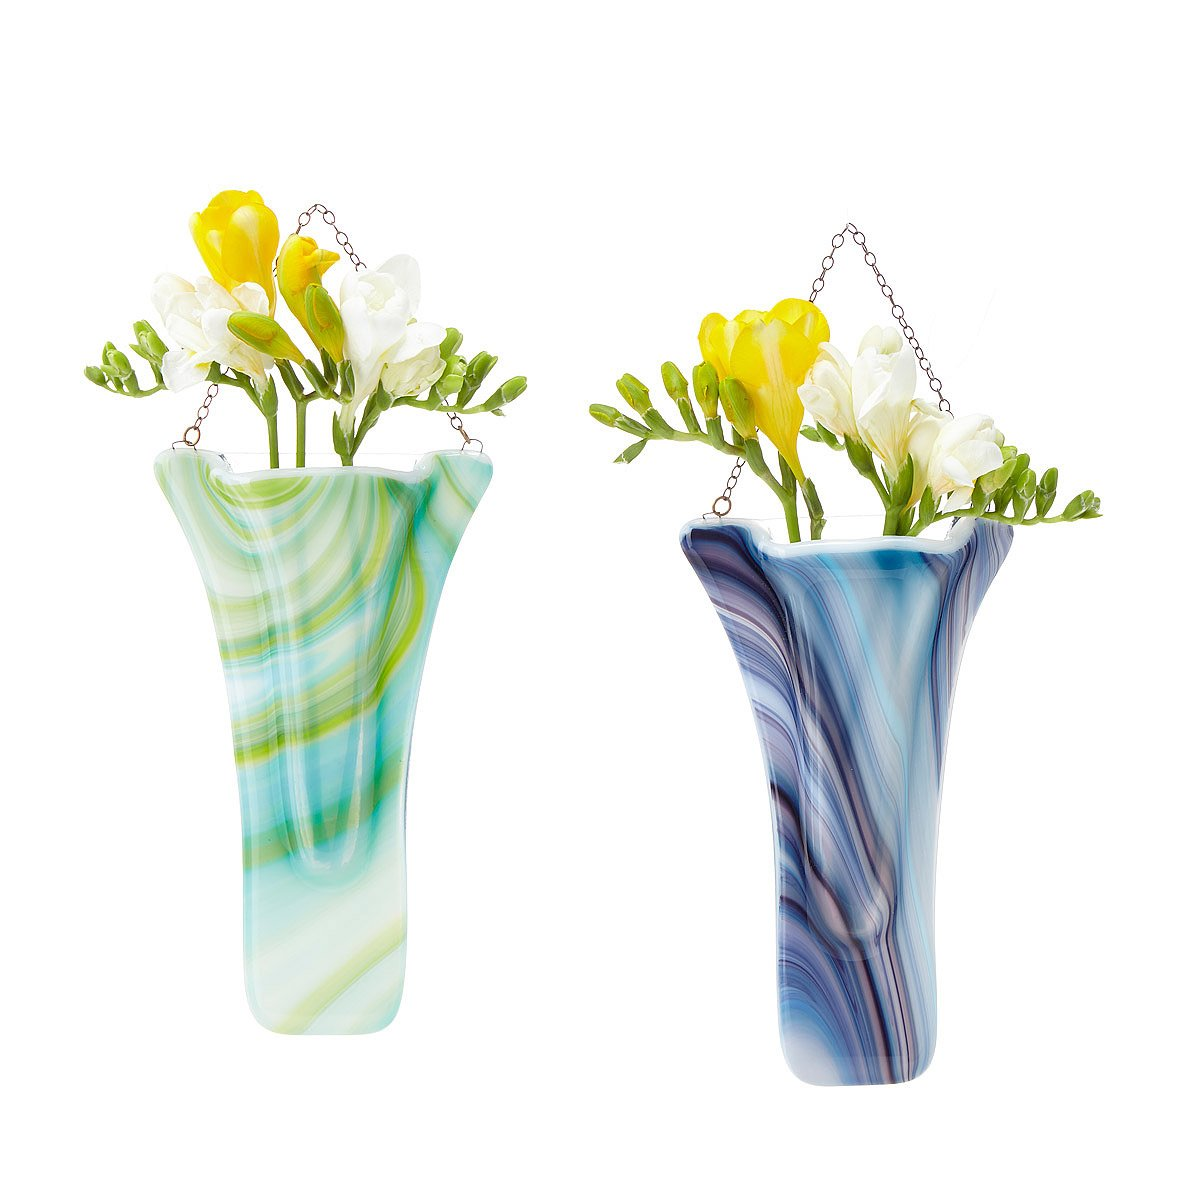 pocket wall vases  hanging vase  uncommongoods - pocket wall vases  thumbnail